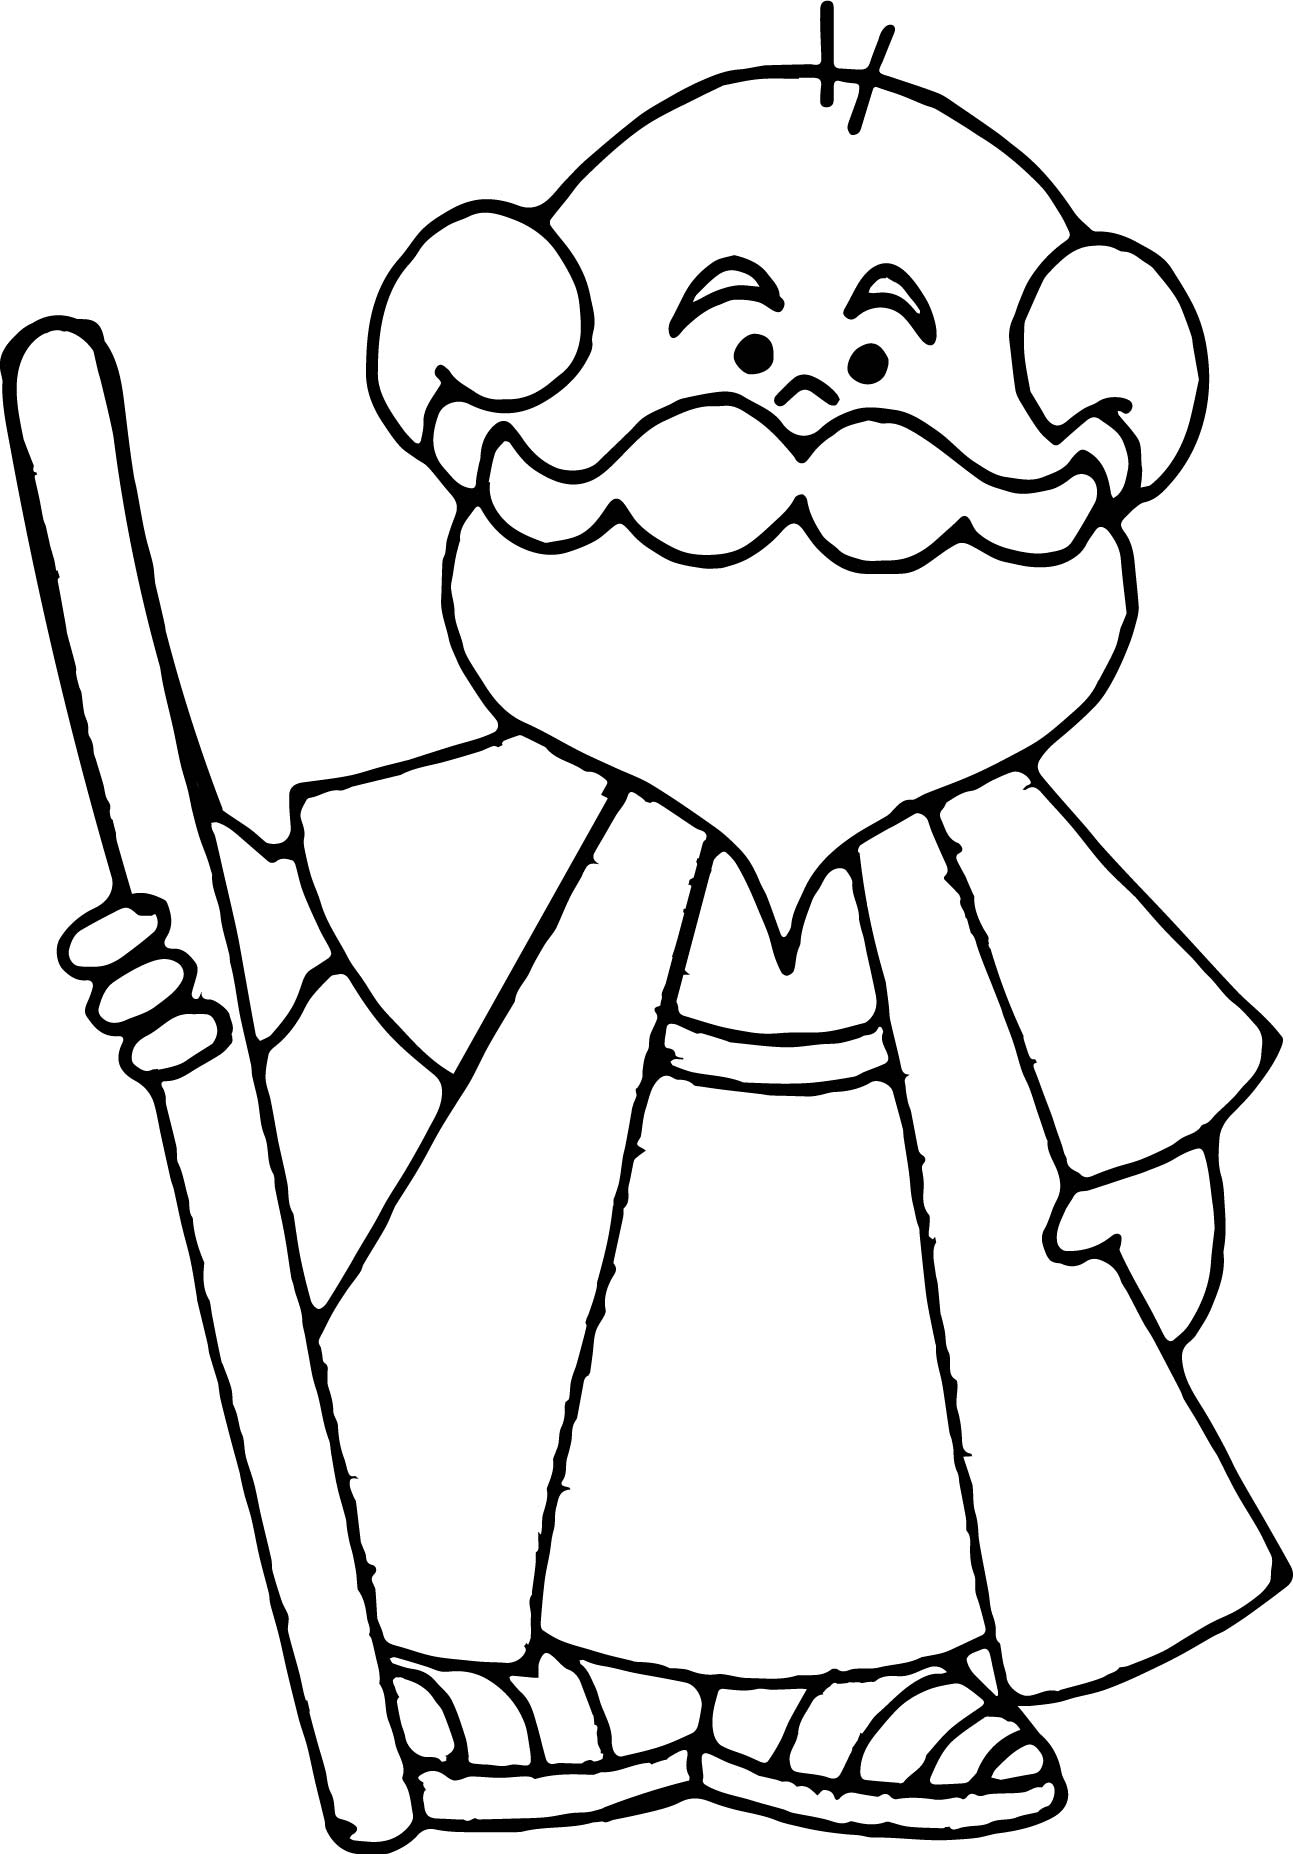 old man coloring pages old man grandfather colouring sheet download free pages man coloring old